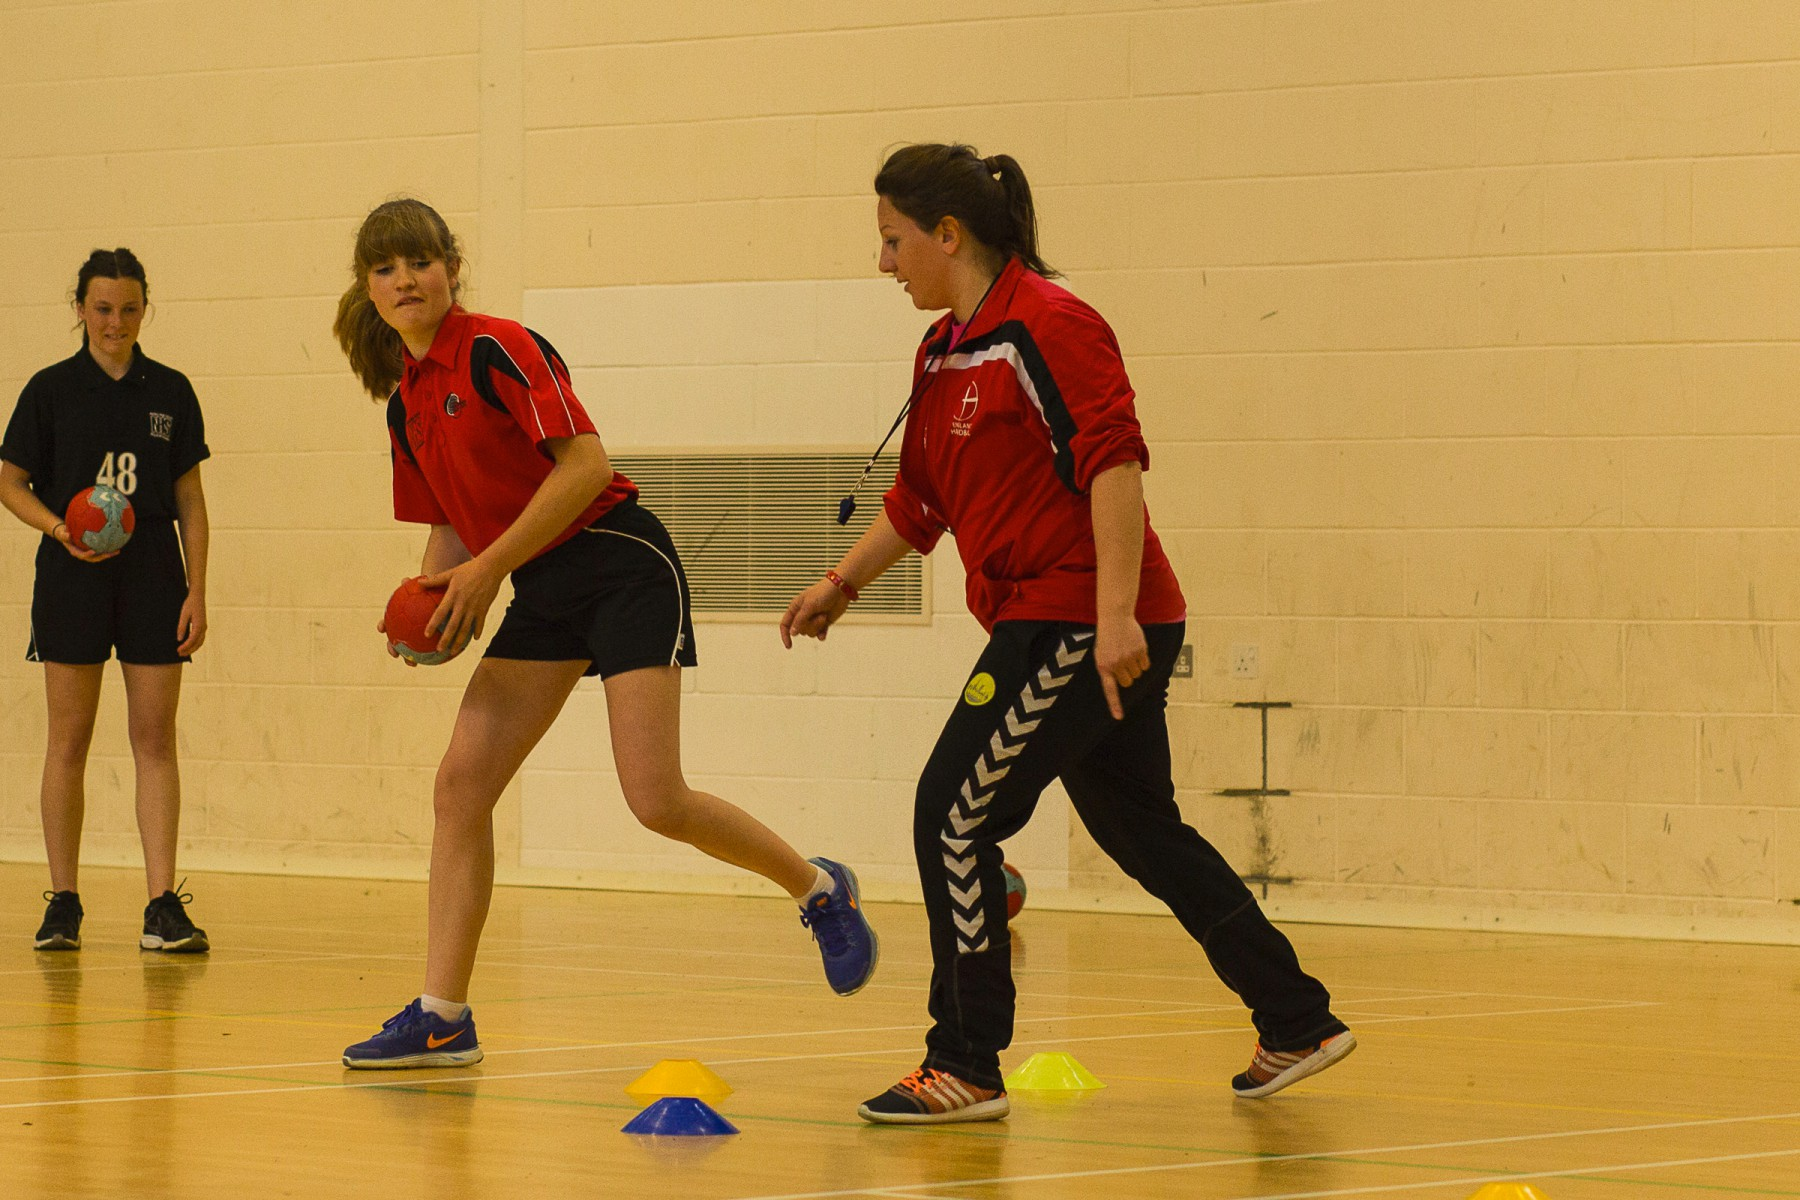 """high school and handball Introduction: the intention of this unit is to familiarize high school students with the popular world sport of team handball while it is often confused with the sport called """"handball,"""" which is a game similar to racket ball, team handball is a fast paced game consisting of seven players on each team."""